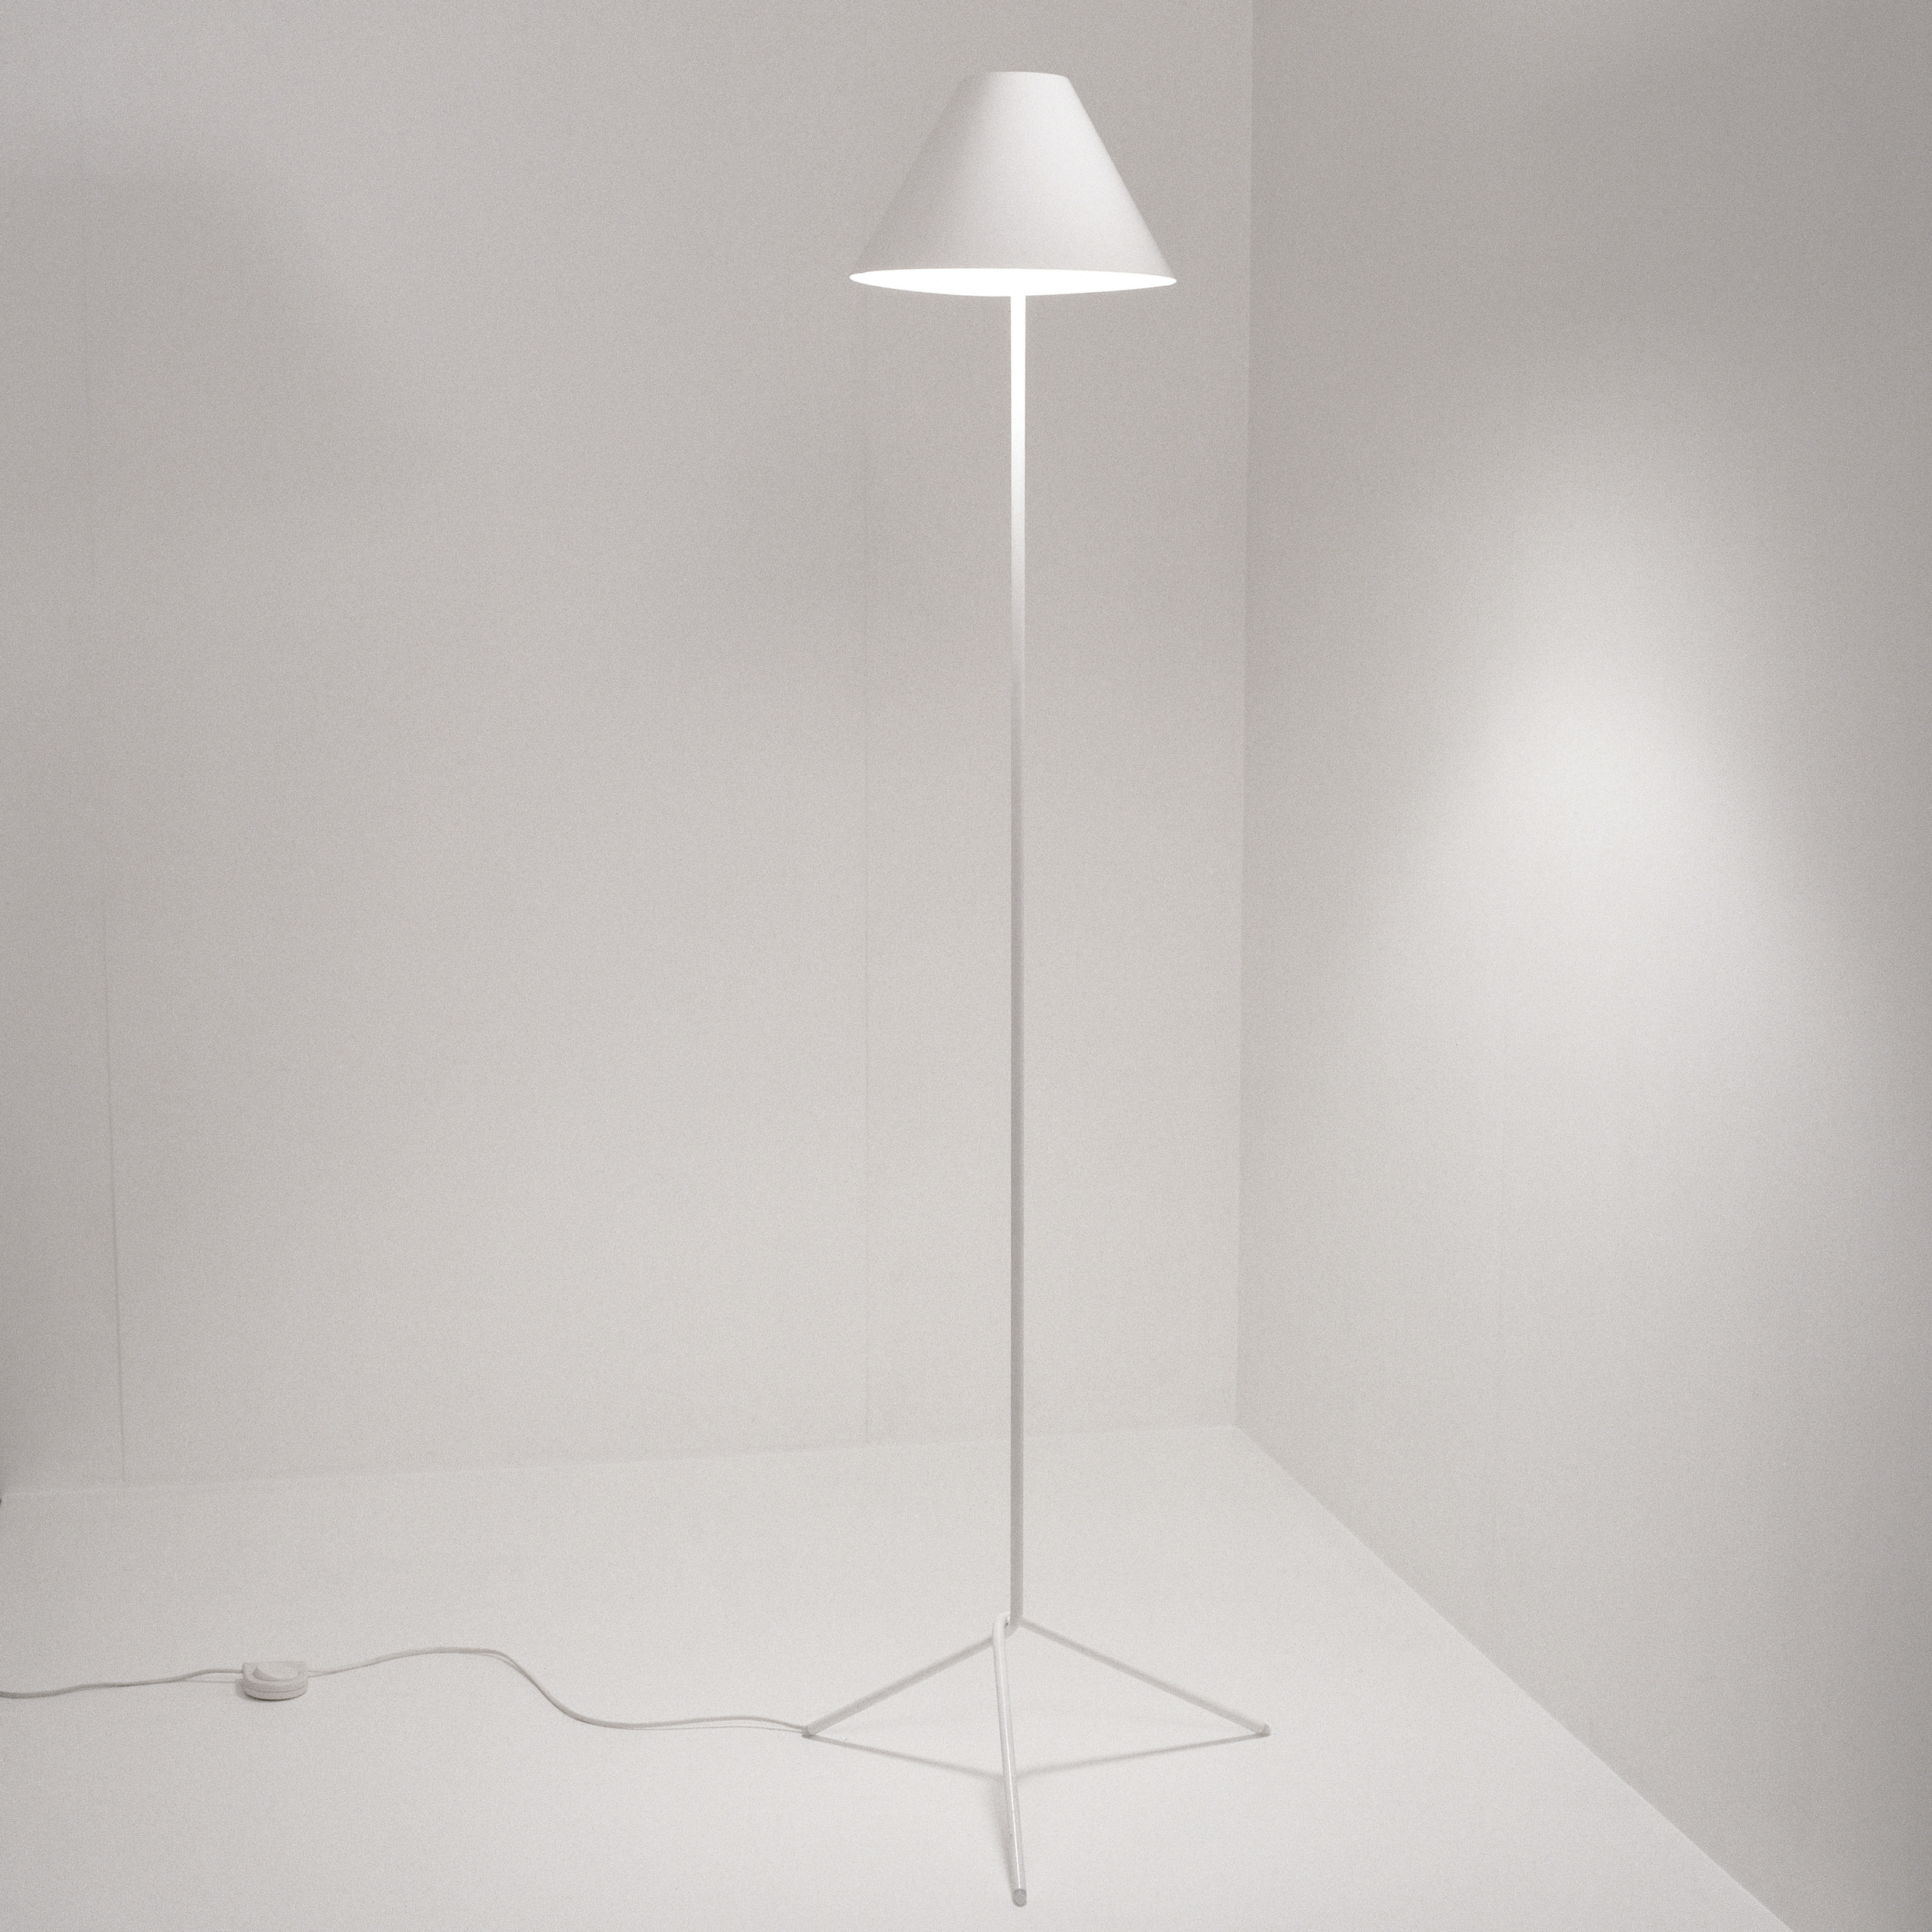 ISM Objects_Shady_white_Floor Lamp 2.jpg